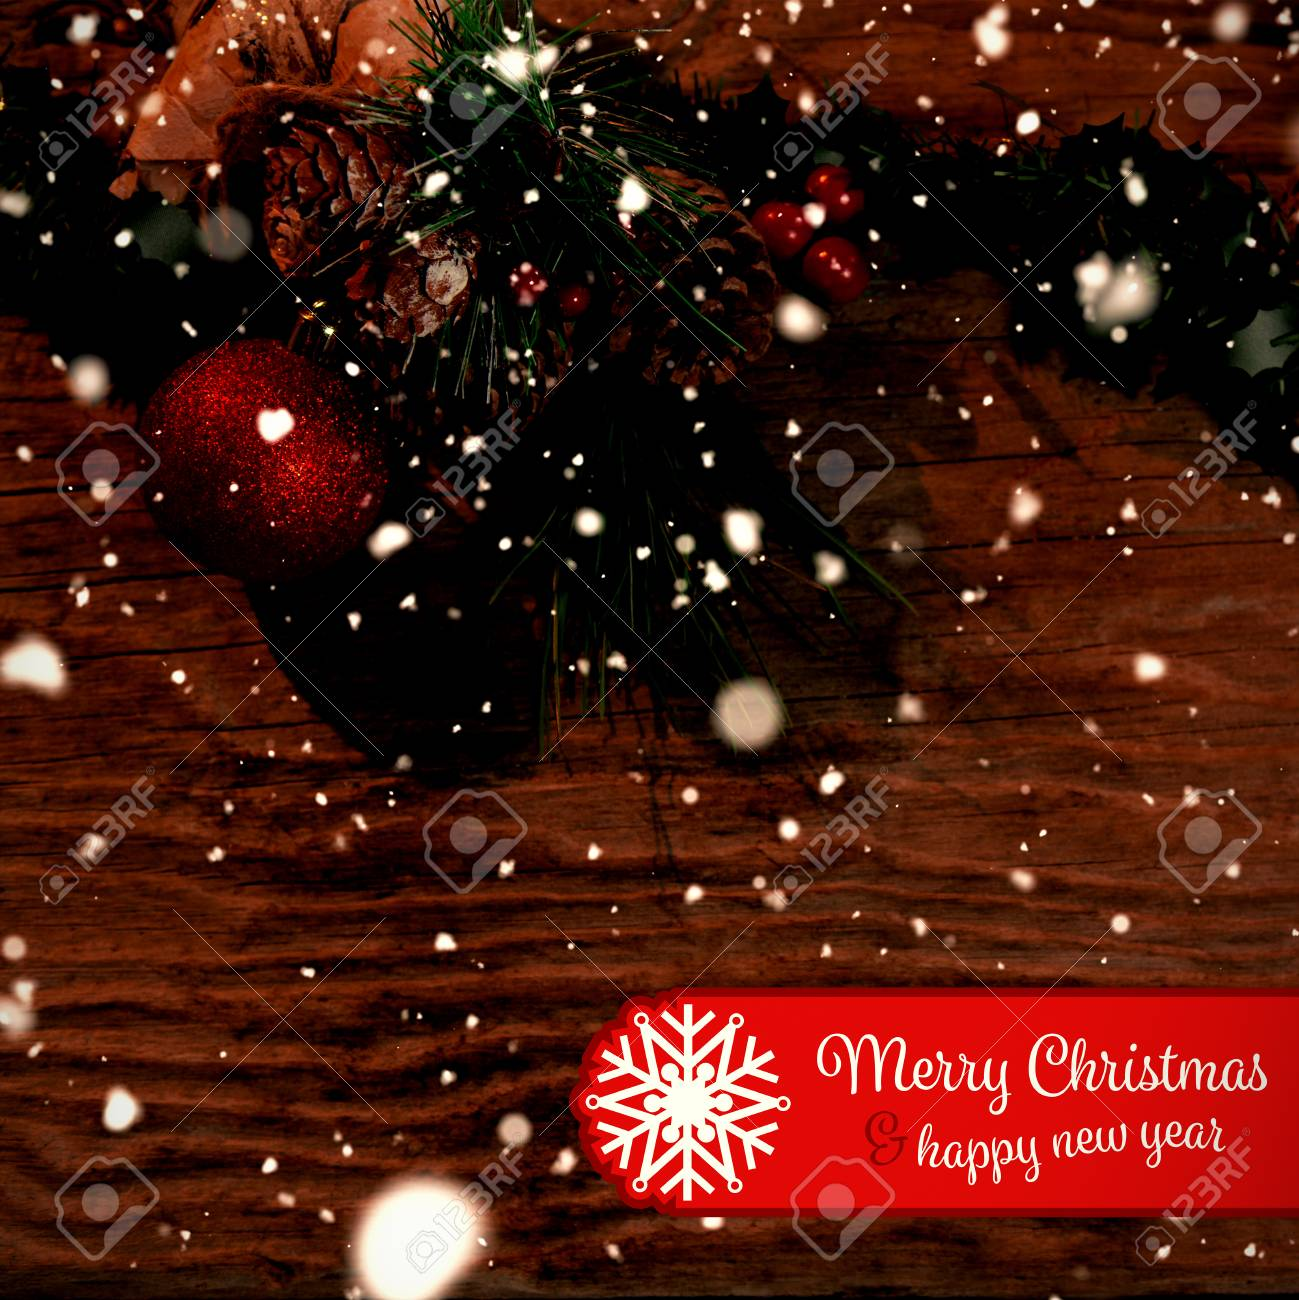 Banner Merry Christmas Against Copy Space With Rustic Christmas